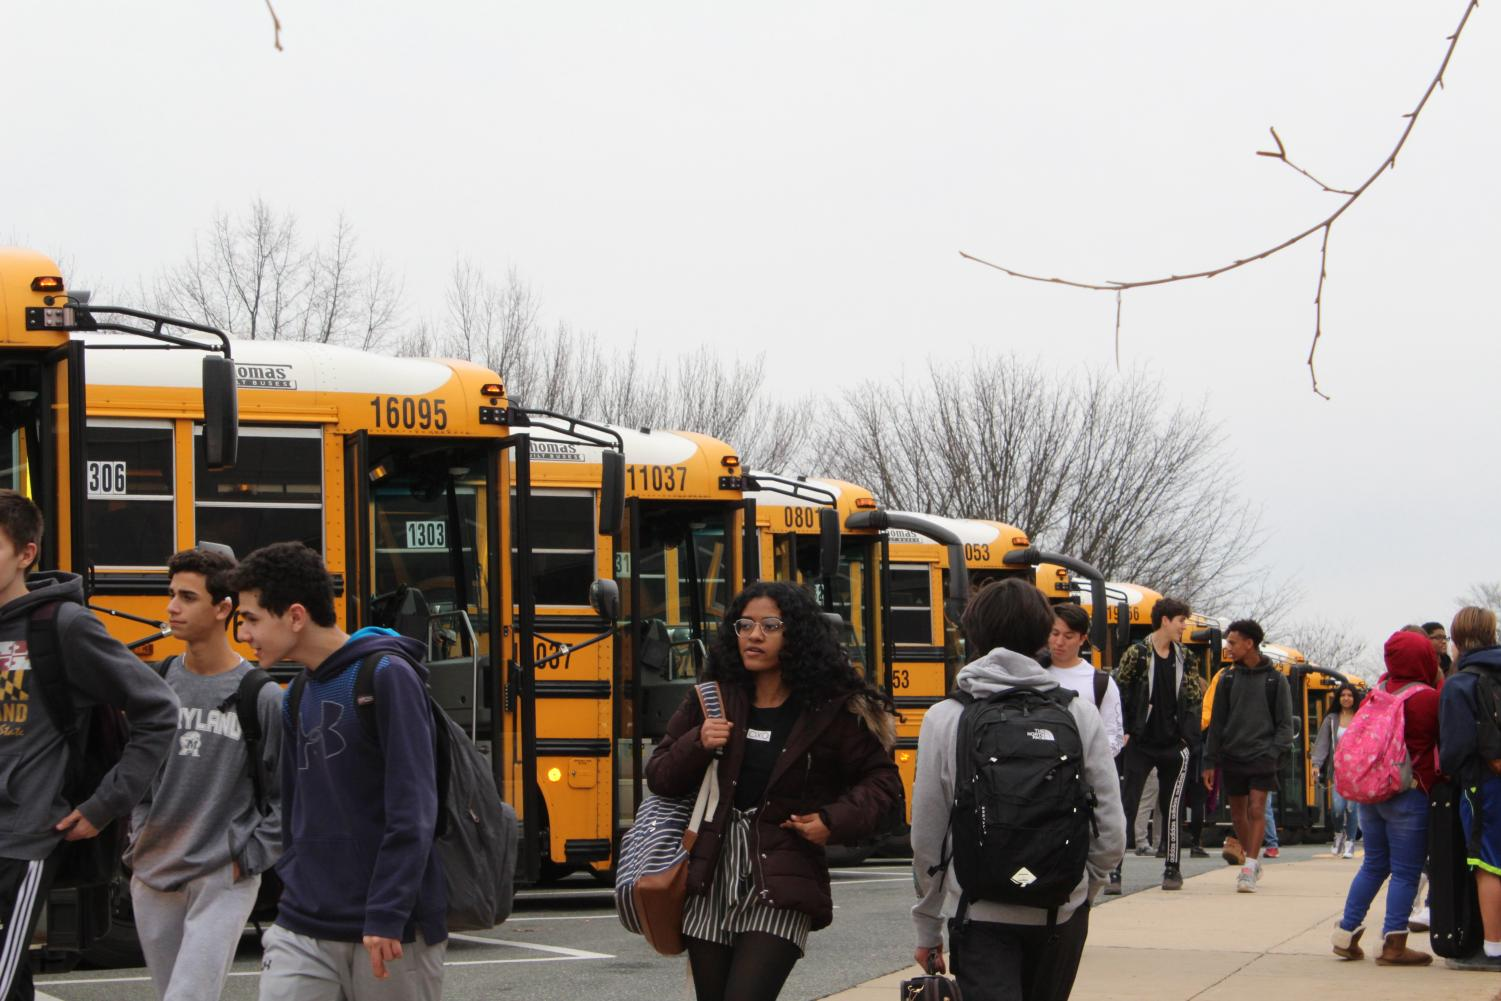 Many students at WJ take the school bus daily which means that the school bus tracking app set in the budget proposal will be used many parents and students. The app is set  to be finished within the next 12 years.